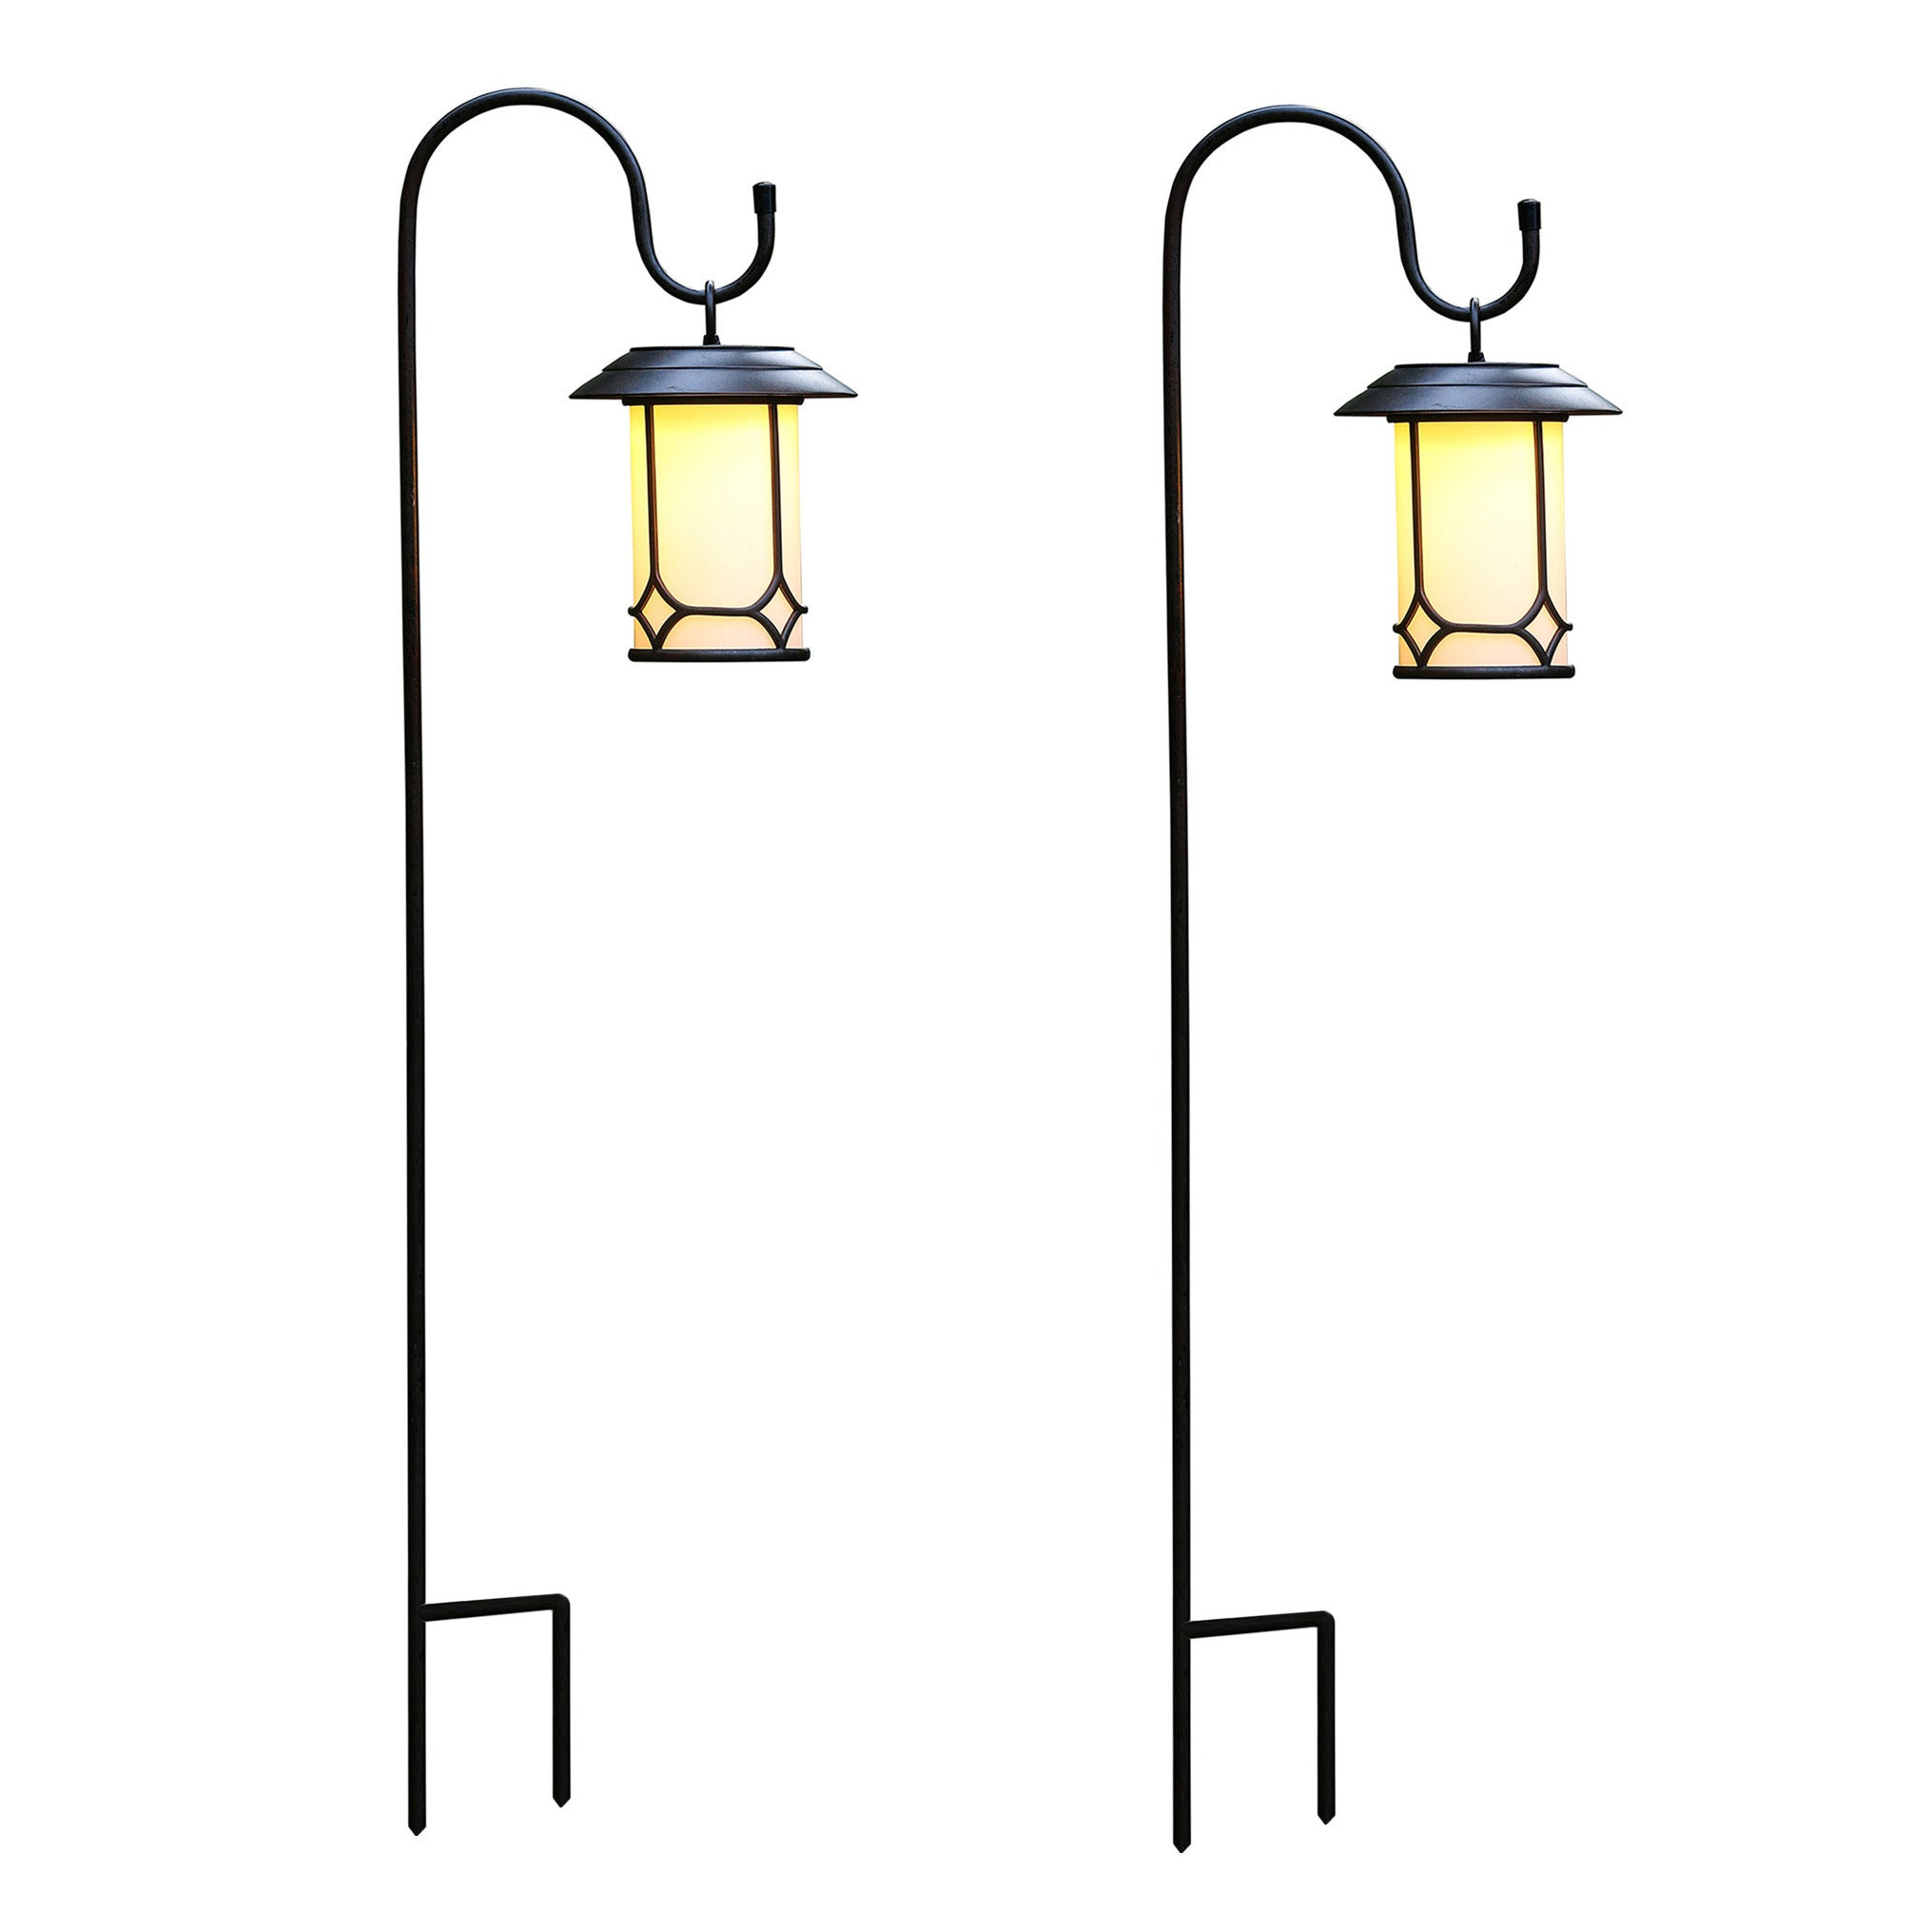 Set of 2 Classical Hanging Solar Lanterns with Shepherd's...